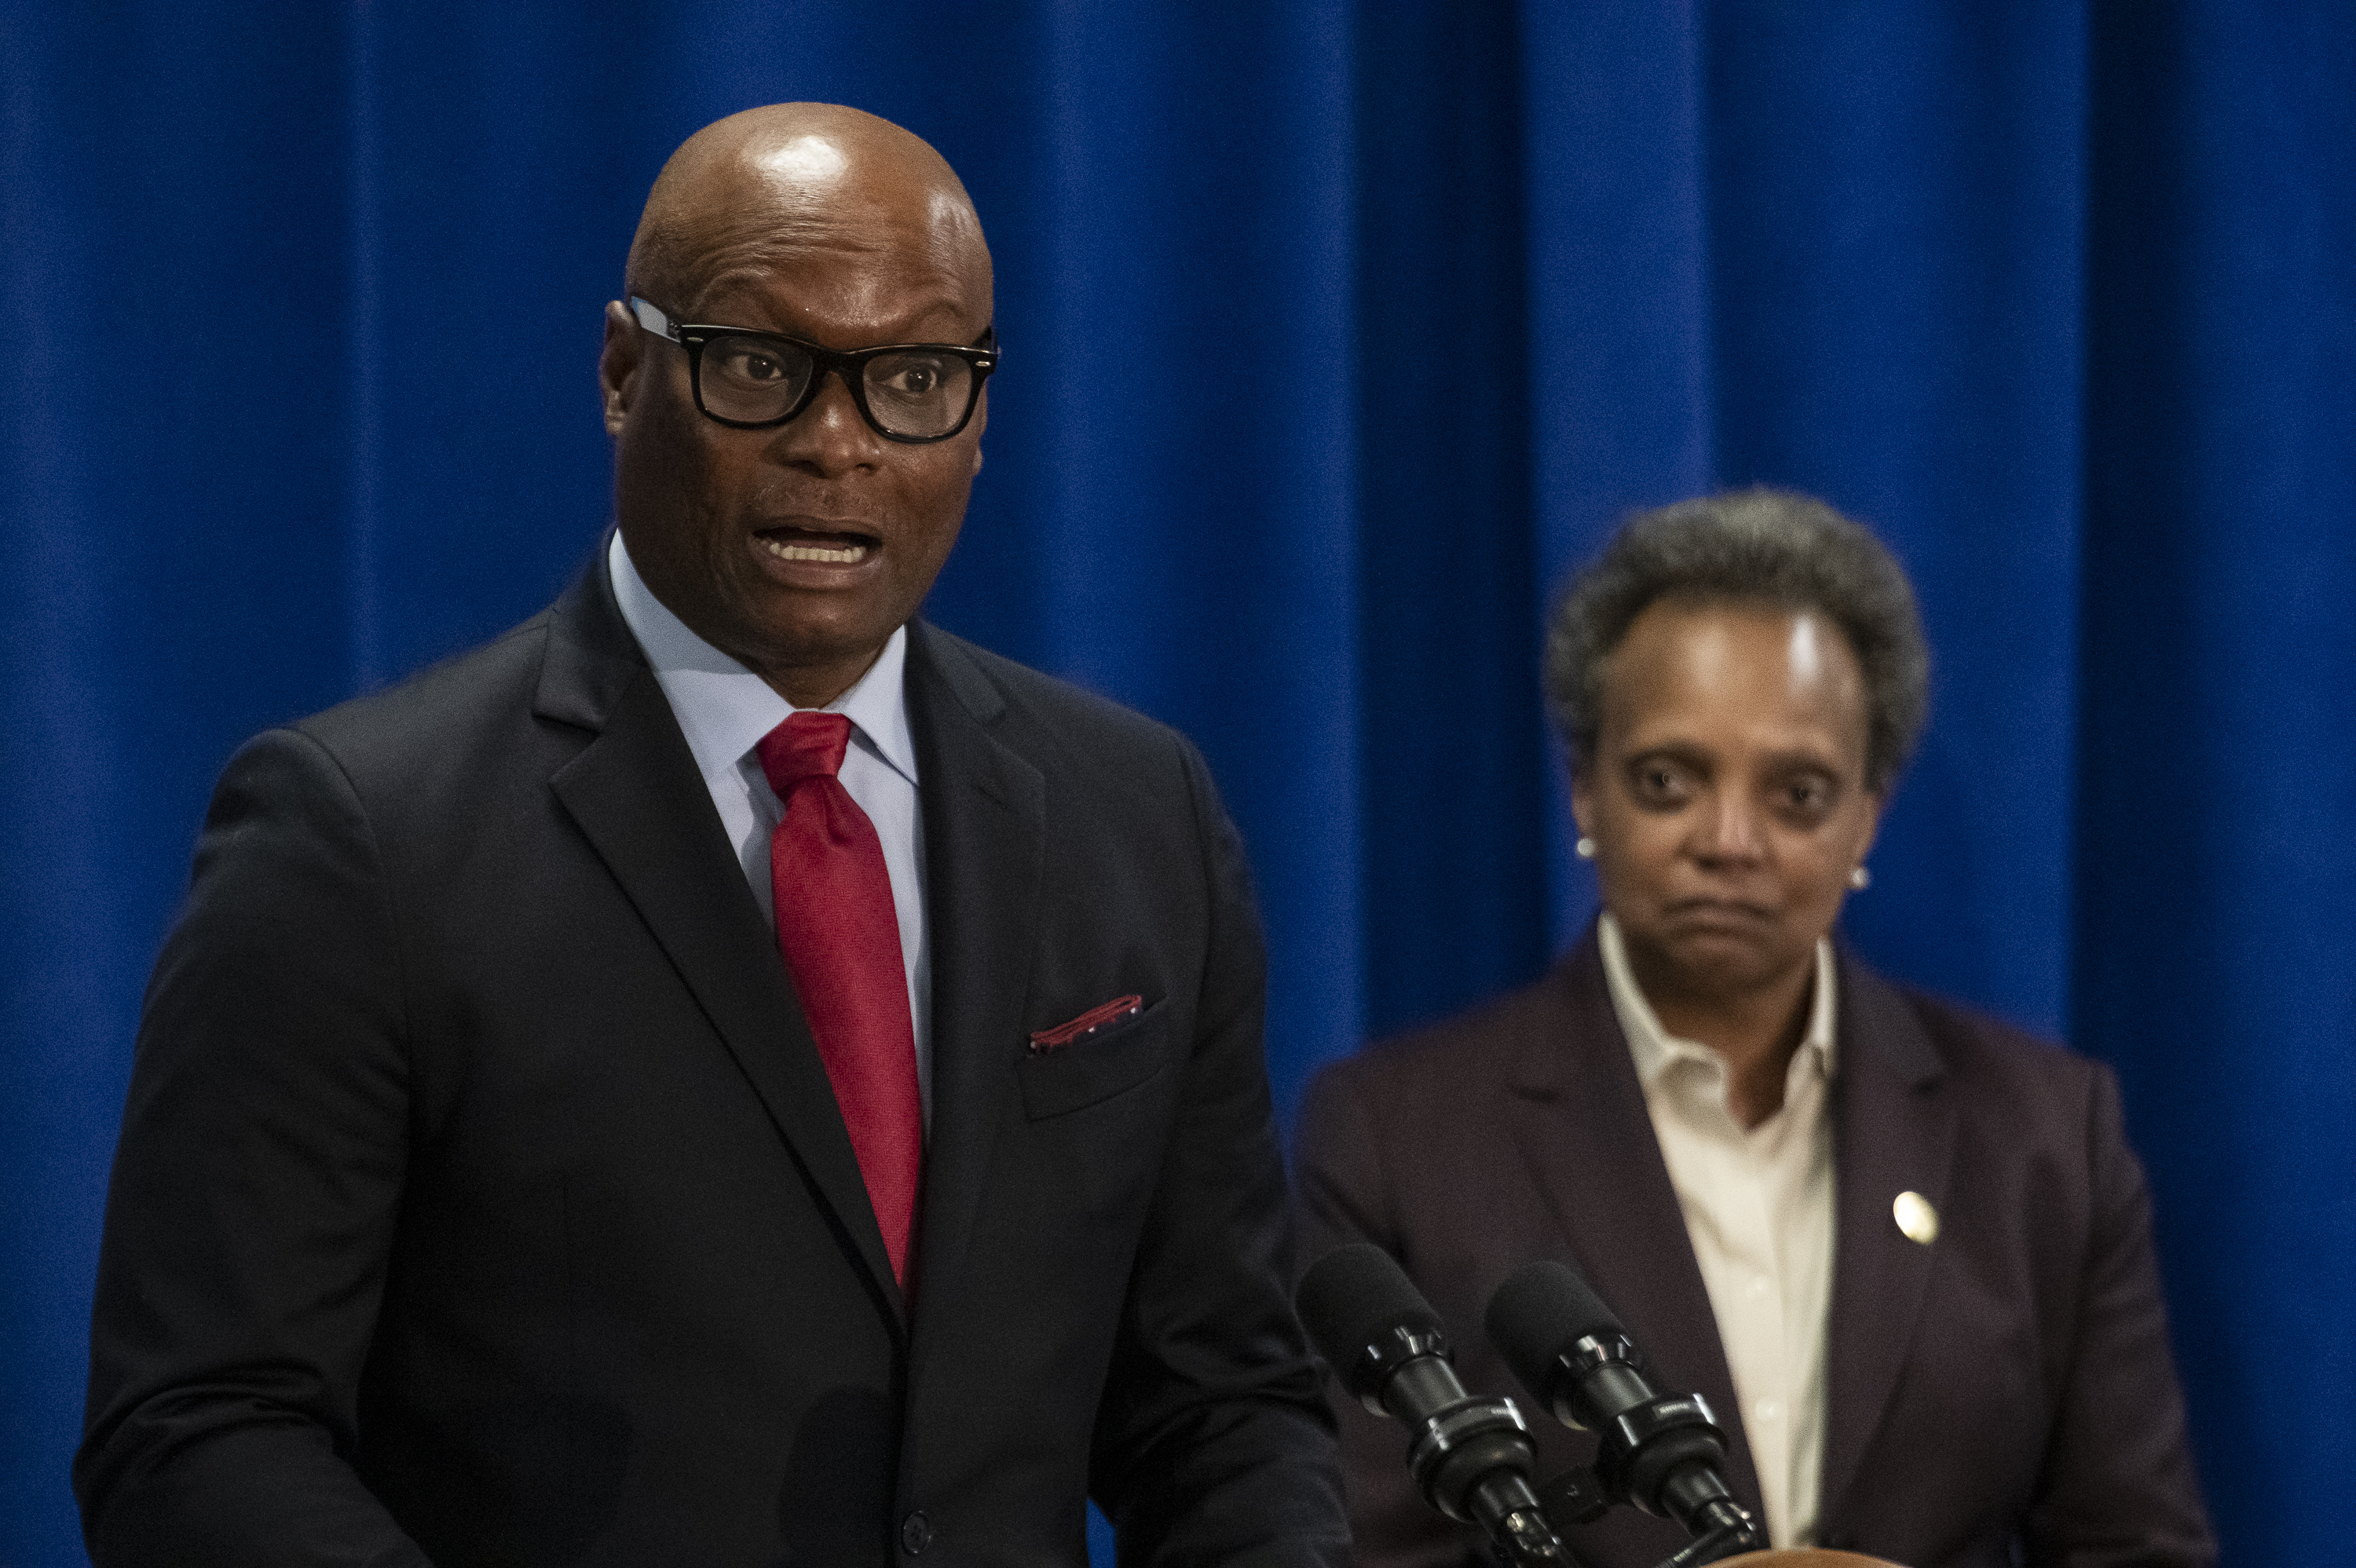 David Brown withr Mayor Lori Lightfoot as she announced Thursday that he's her pick to be Chicago's next police superintendent.